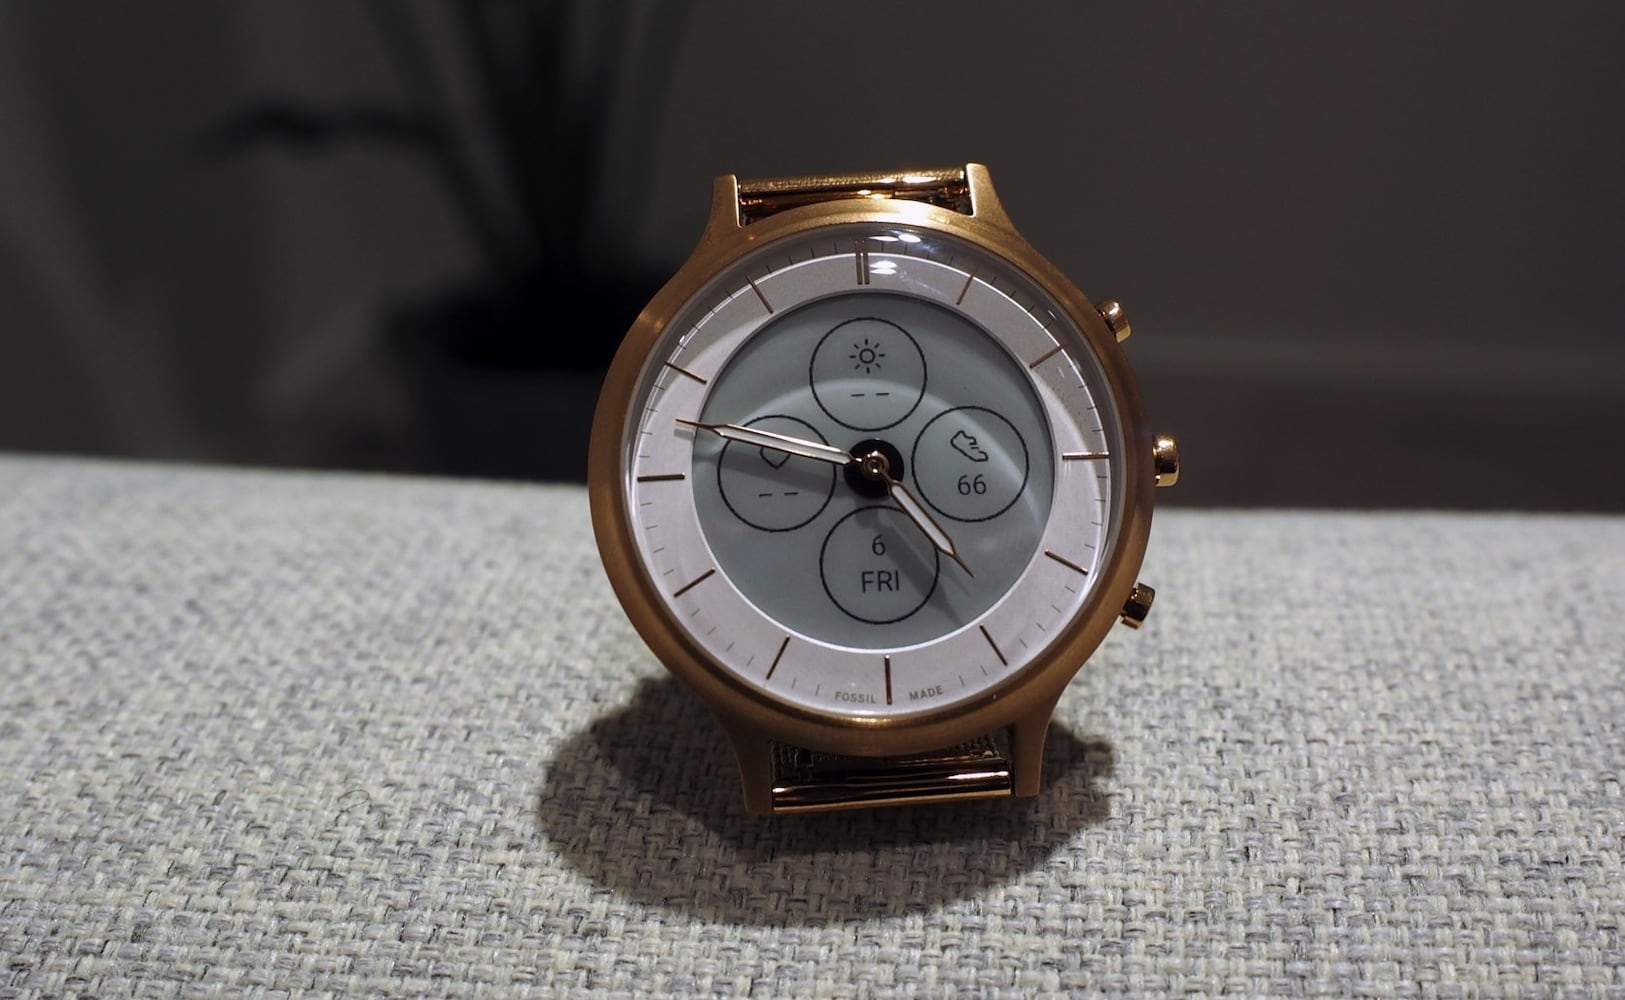 Fossil Hybrid HR E-Ink Smartwatch appears more like an analog timepiece